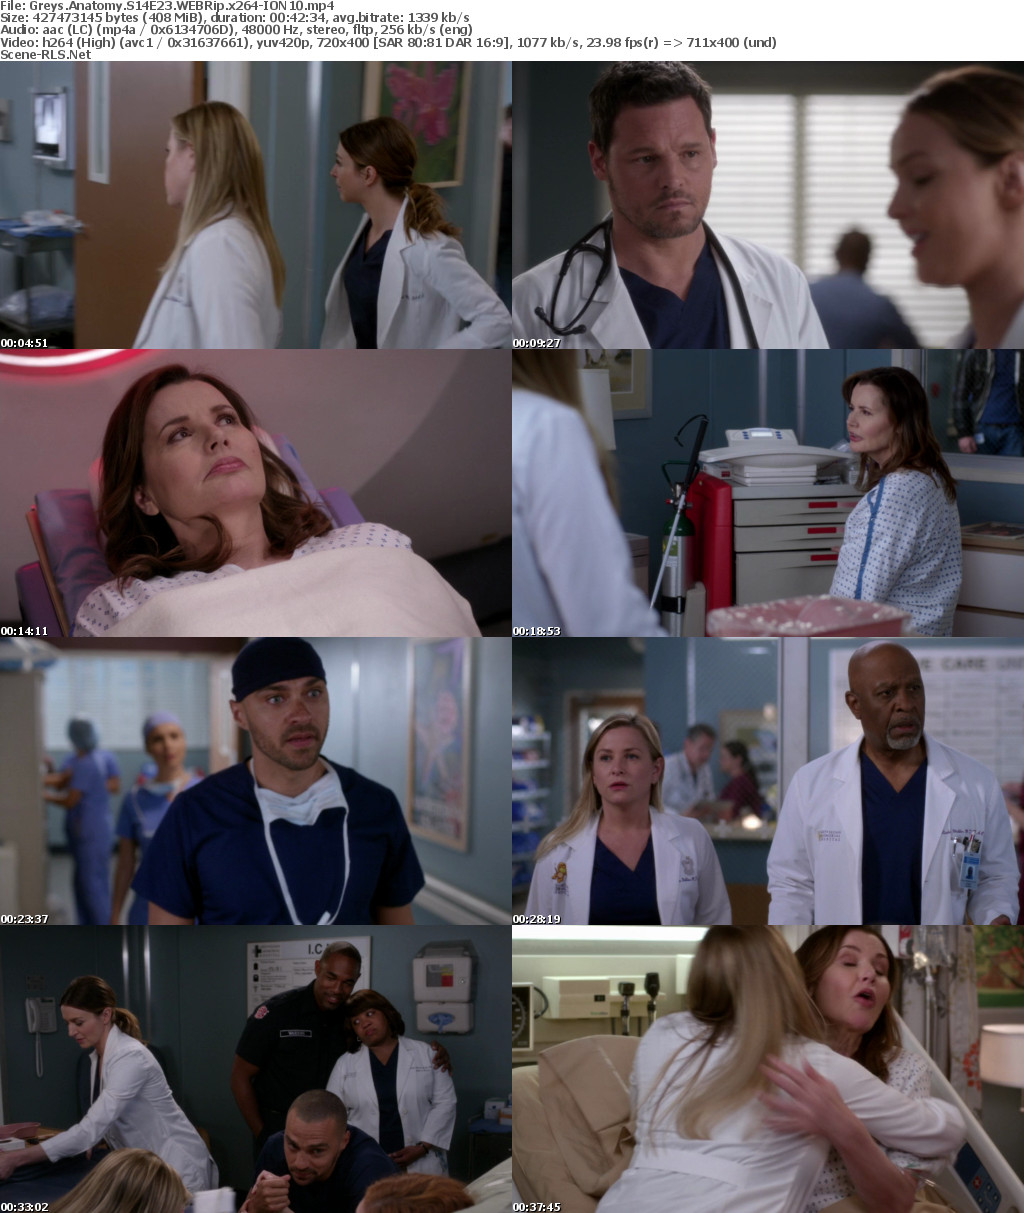 Download Greys Anatomy S14E16 Mp4 — Sceneups